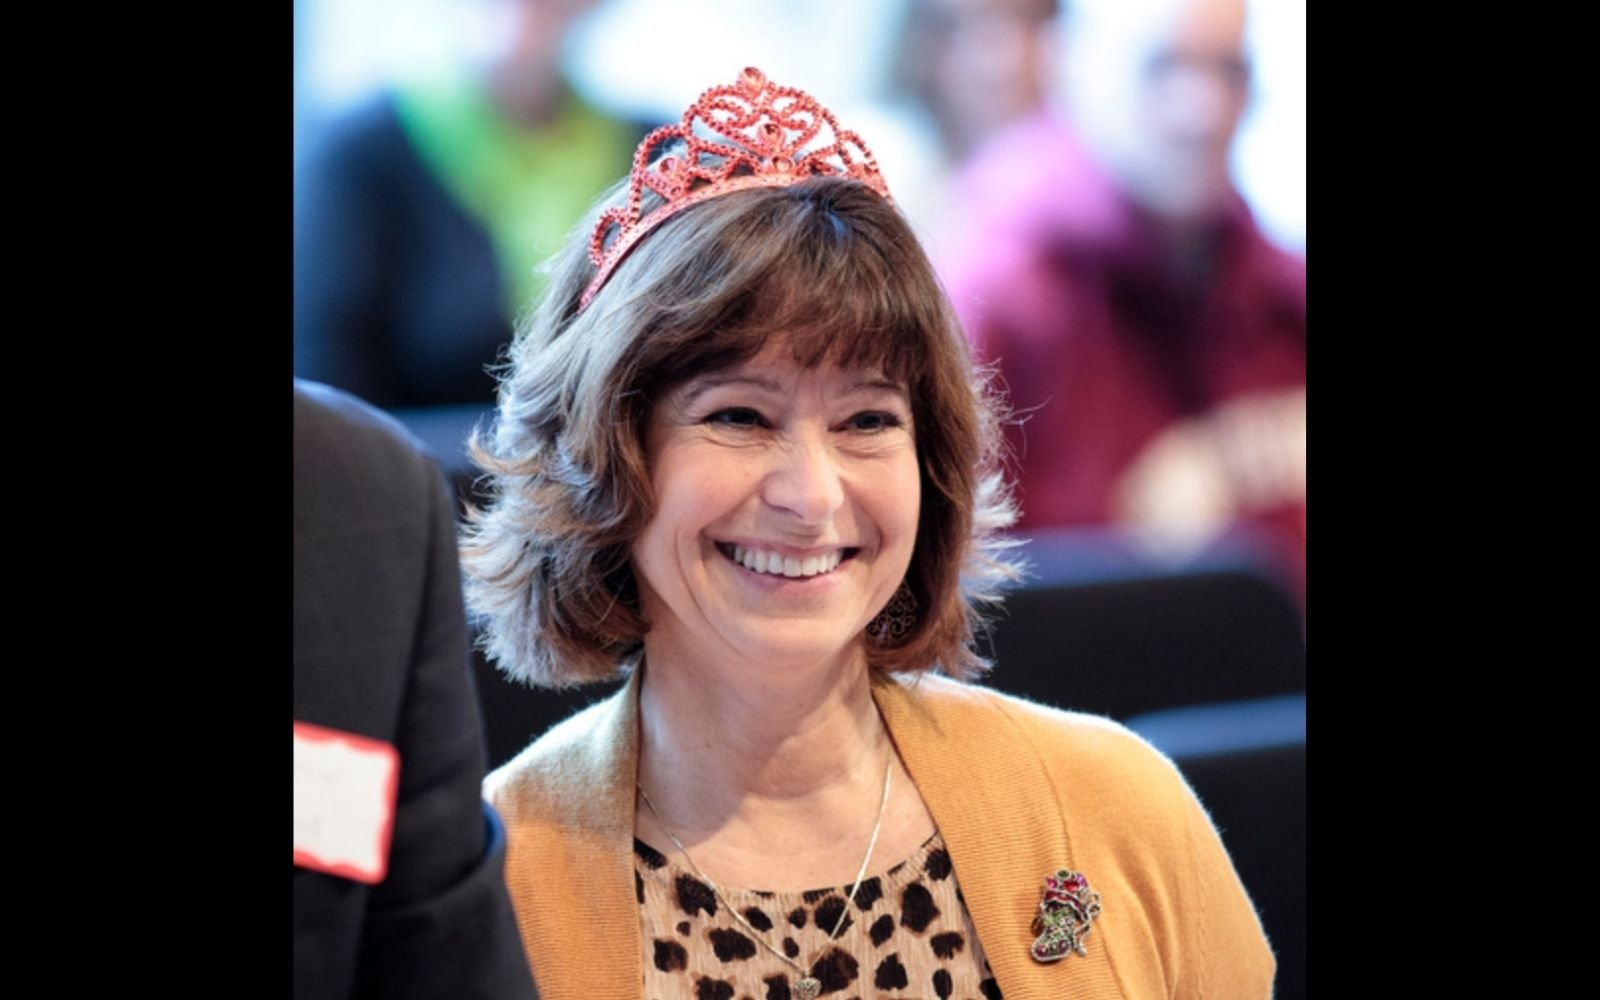 A woman with brown hair and bangs wearing a yellow cardigan and pink toy tiara smiles widely.